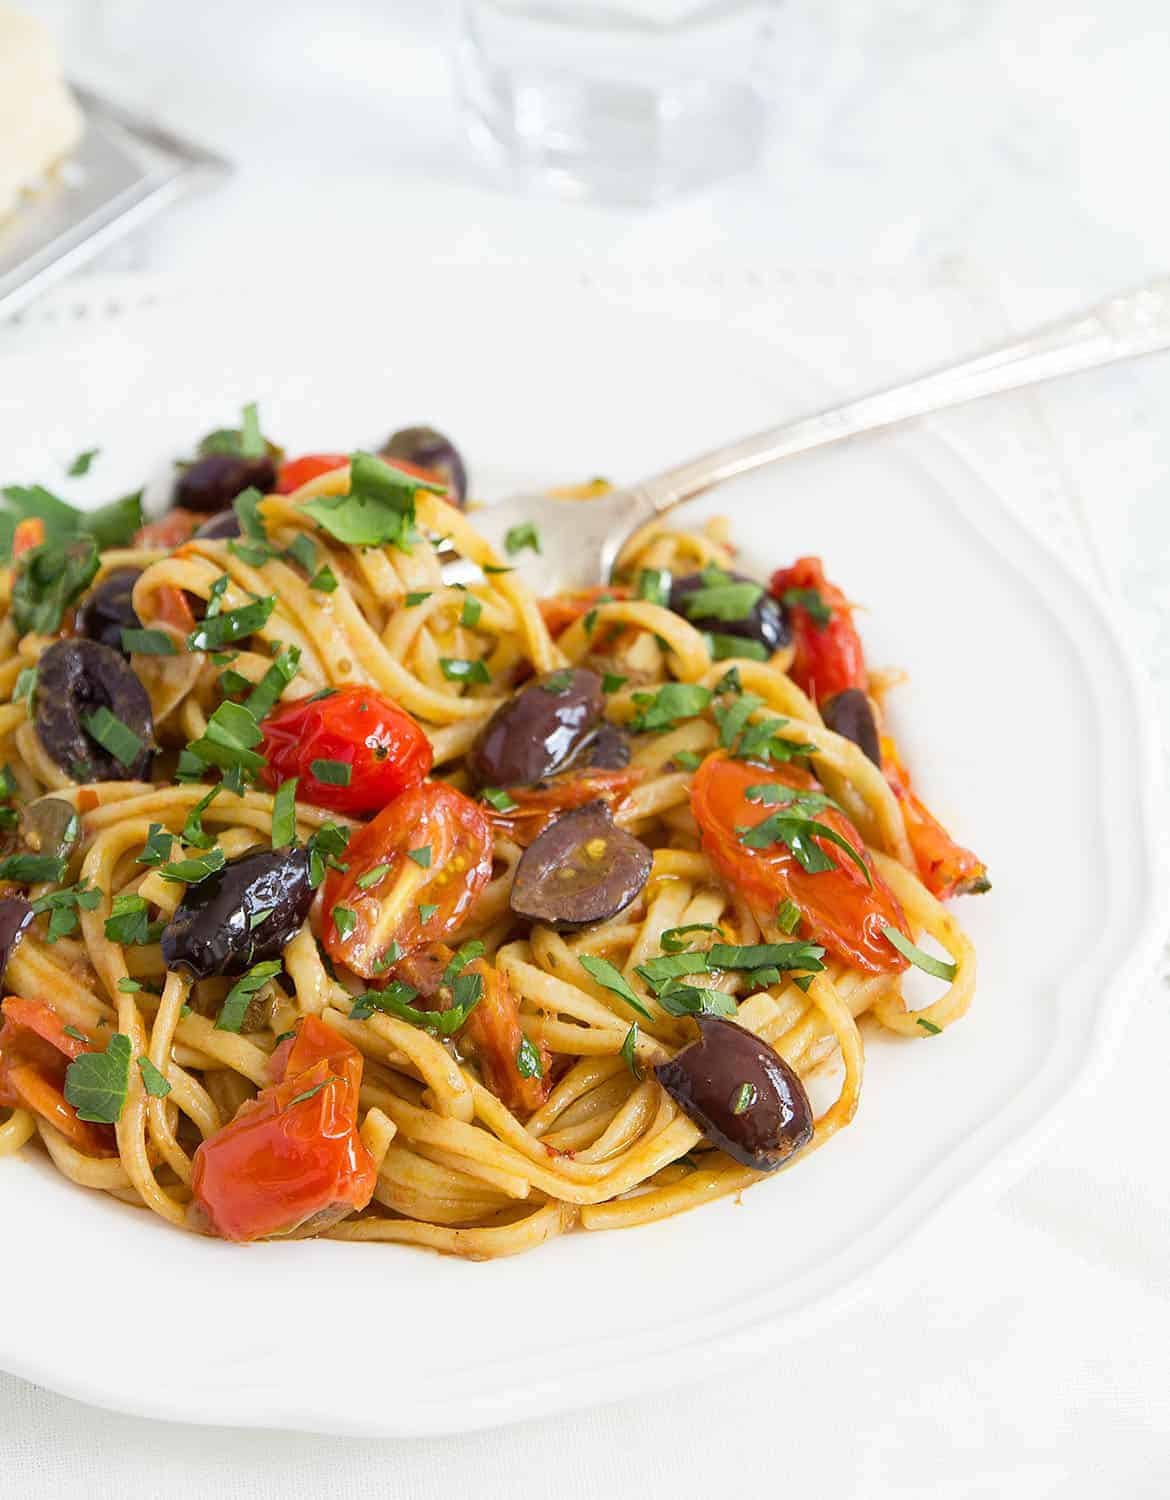 Spaghetti alla puttanesca with black olive and tomatoes on a white plate over a white background.